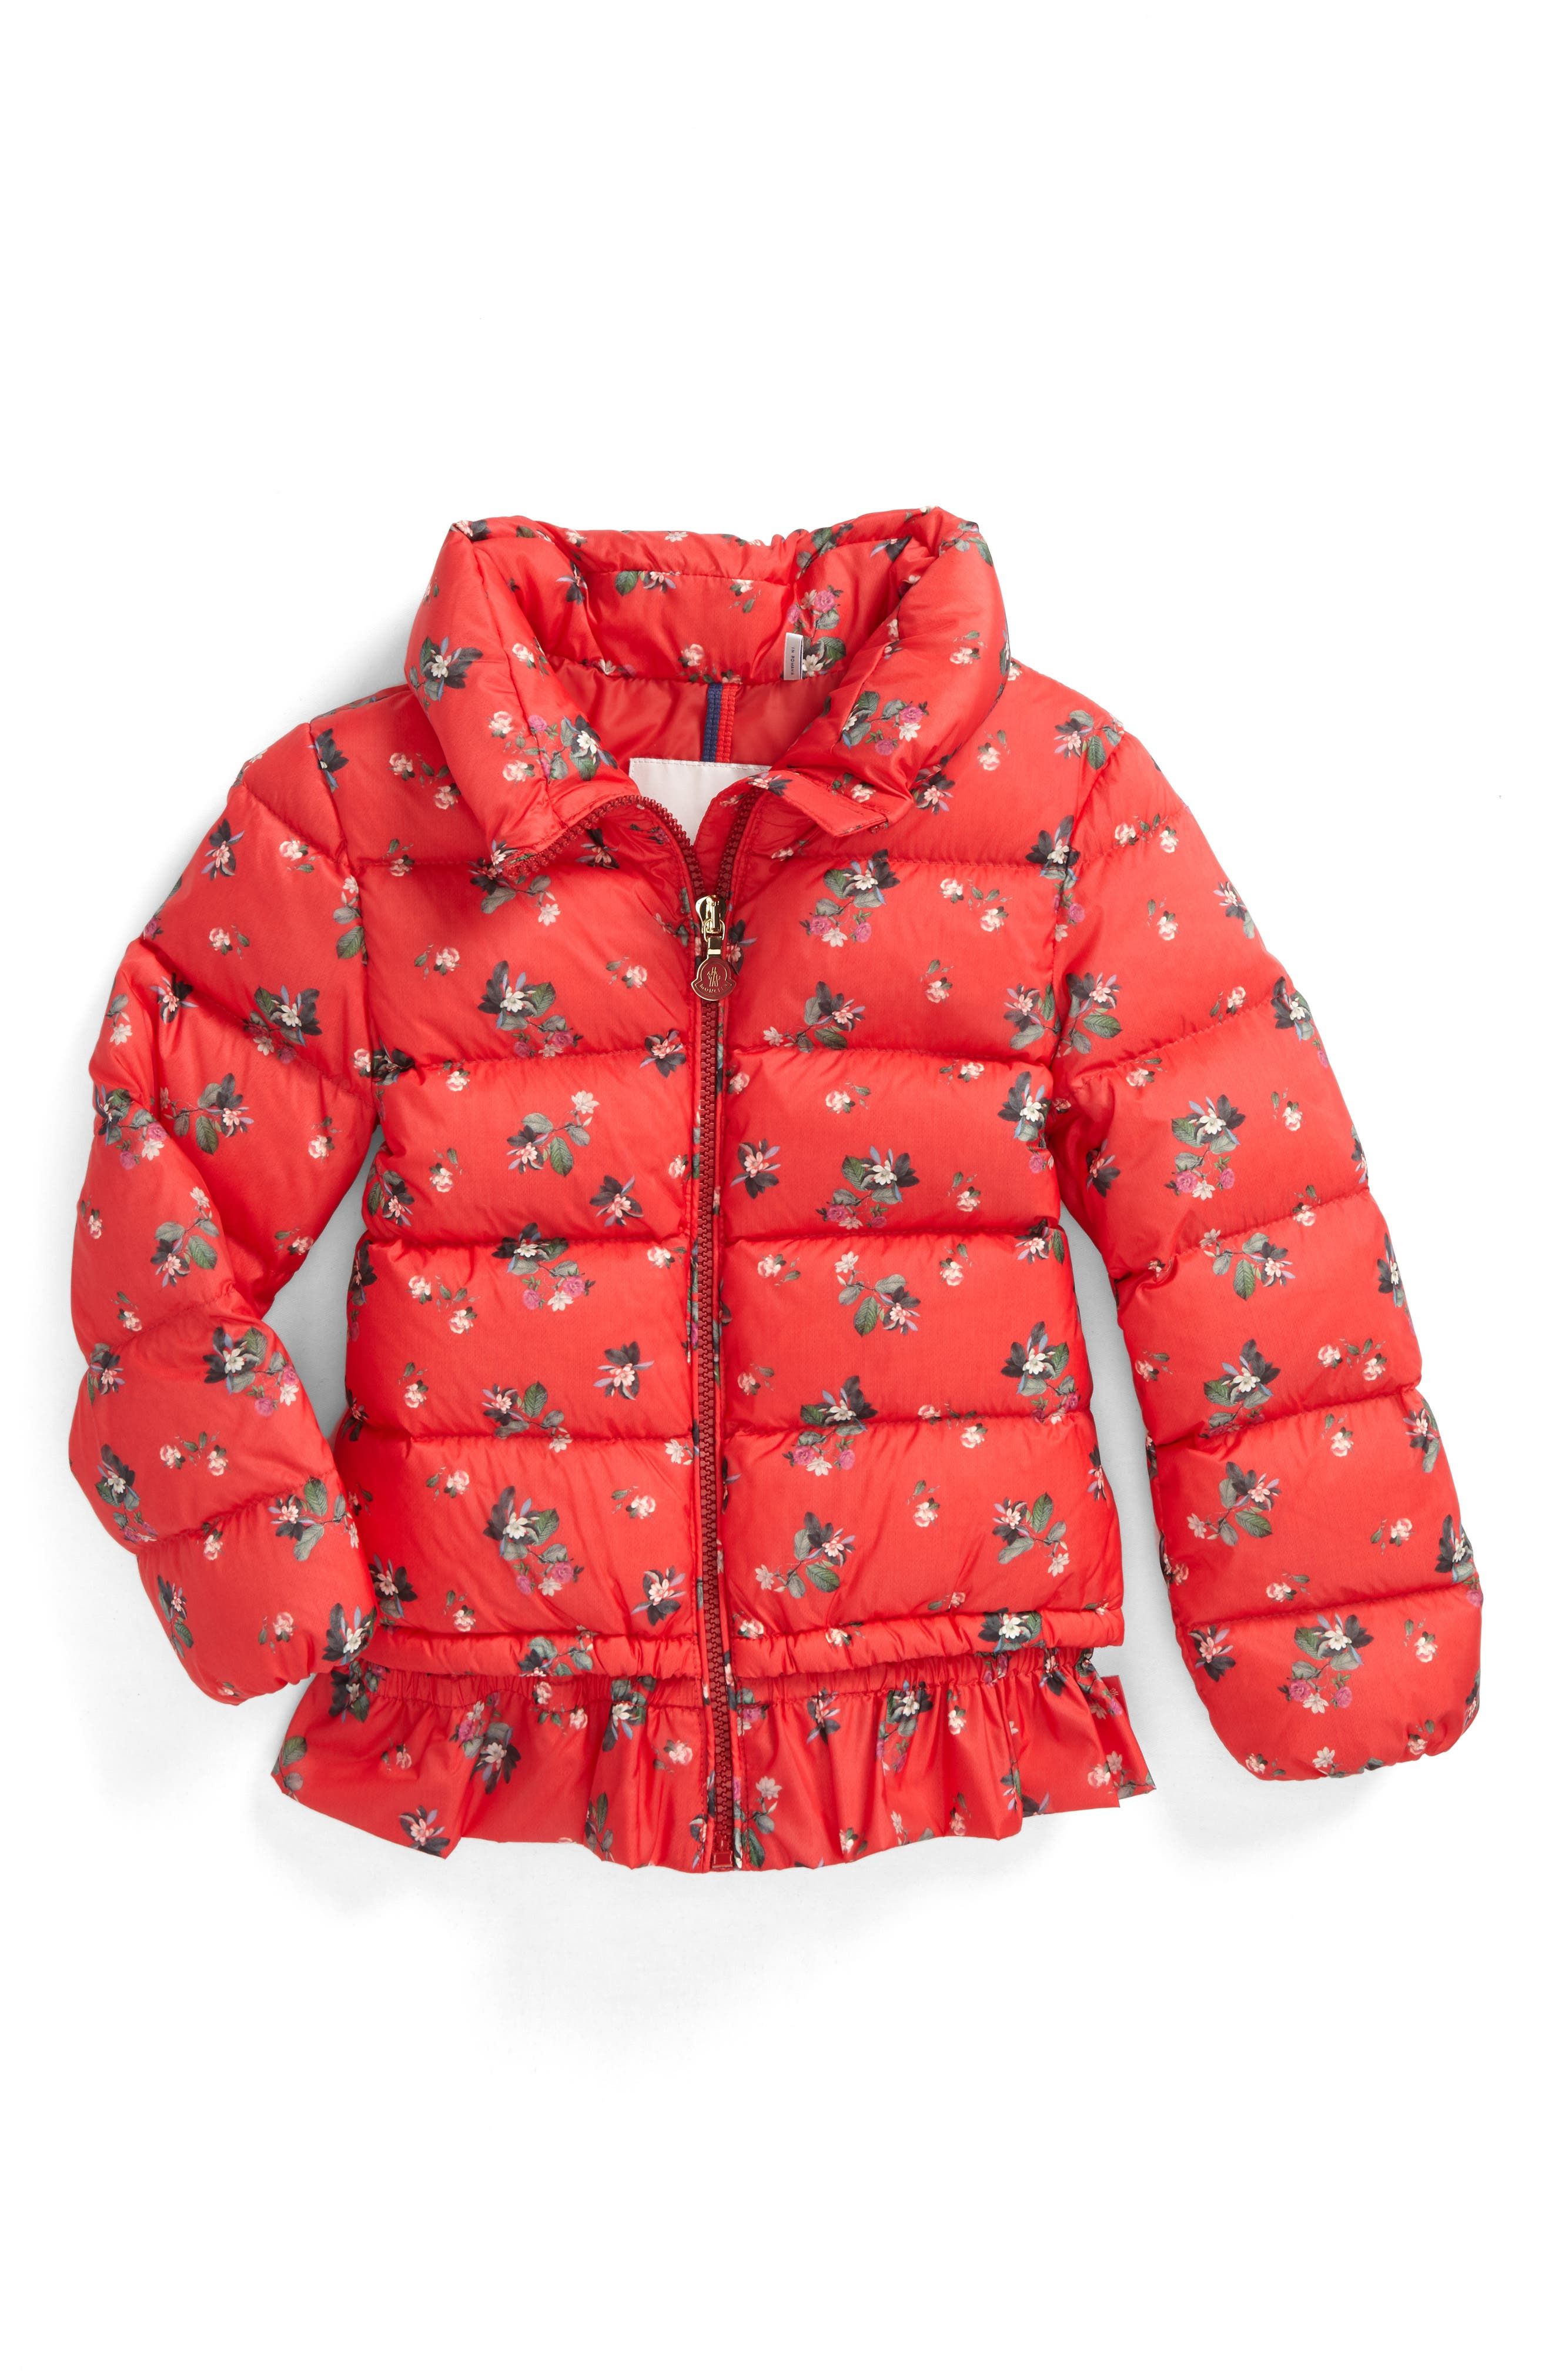 Alternate Image 1 Selected - Moncler Anette Water-Resistant Down Jacket (Little Girls & Big Girls)